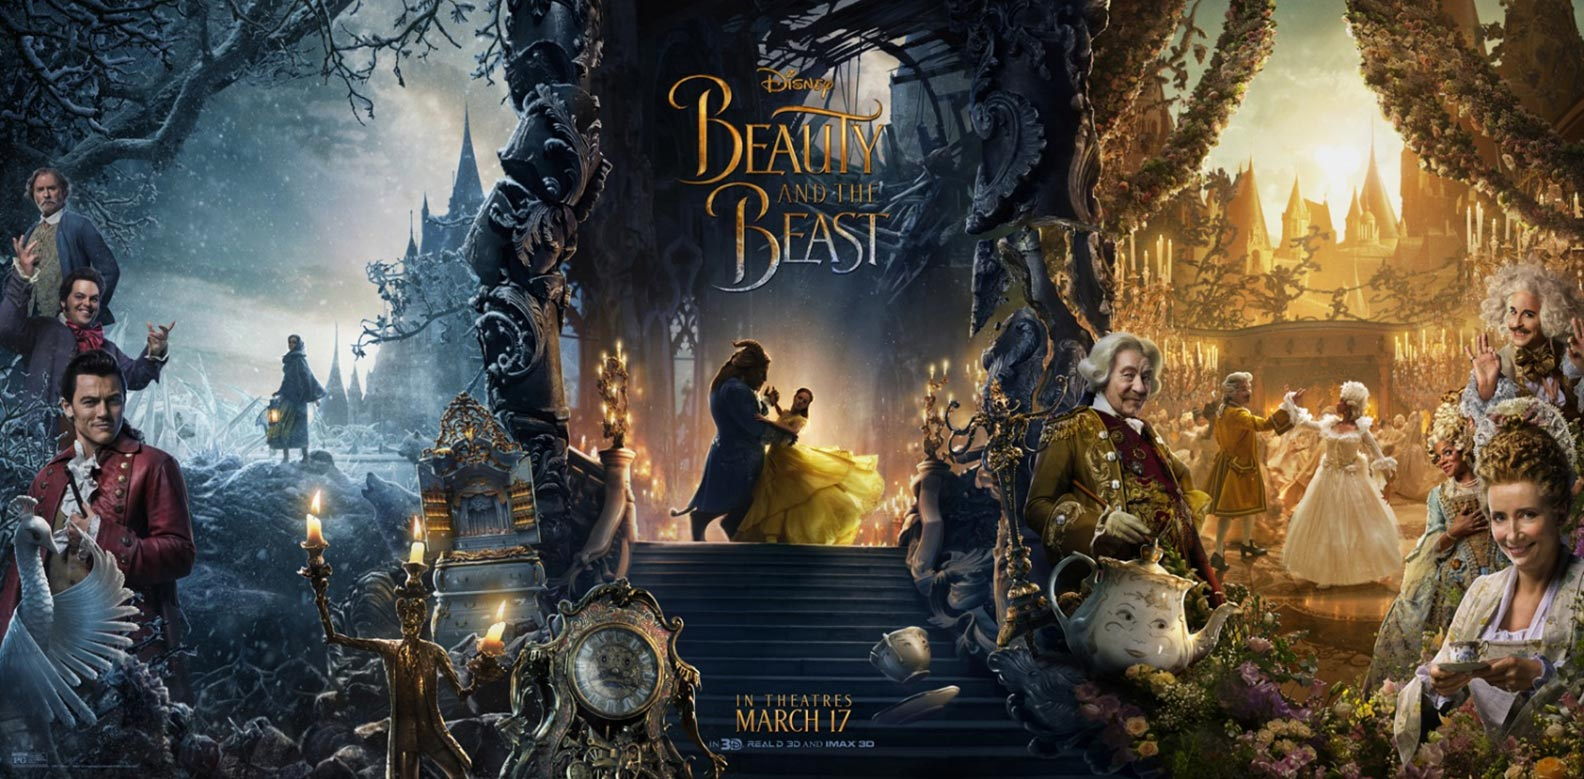 Beauty and the Beast Poster #6